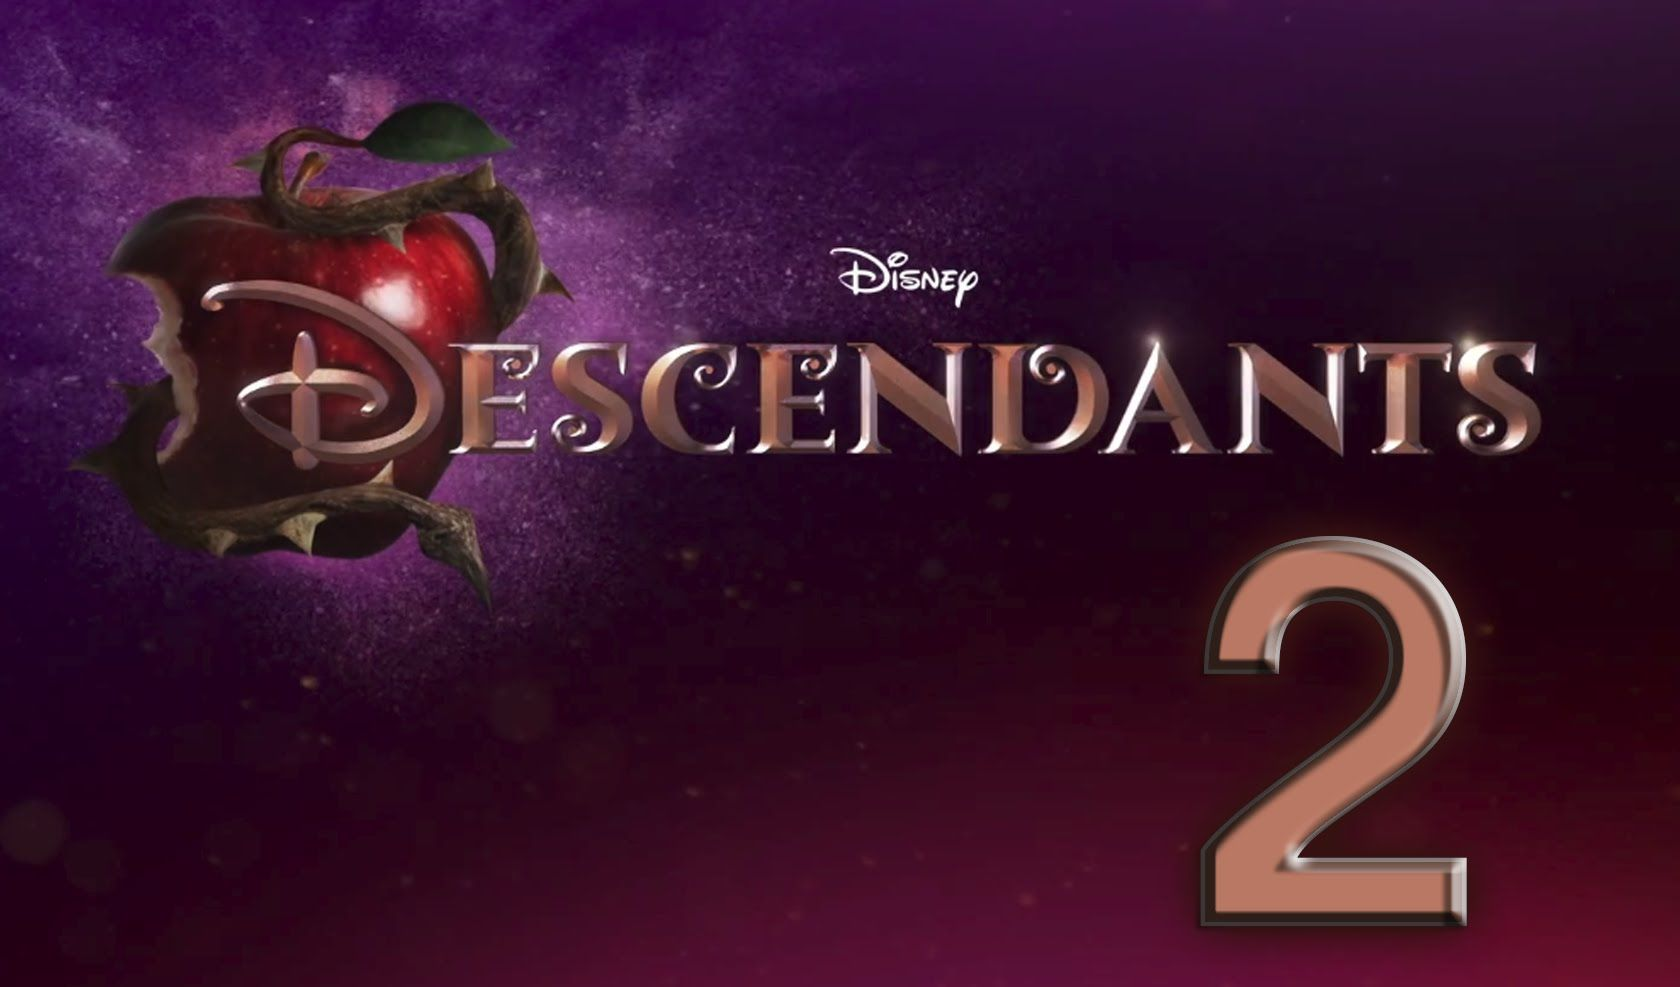 Descendants 2 Logo wallpaper HD 2016 in Movies